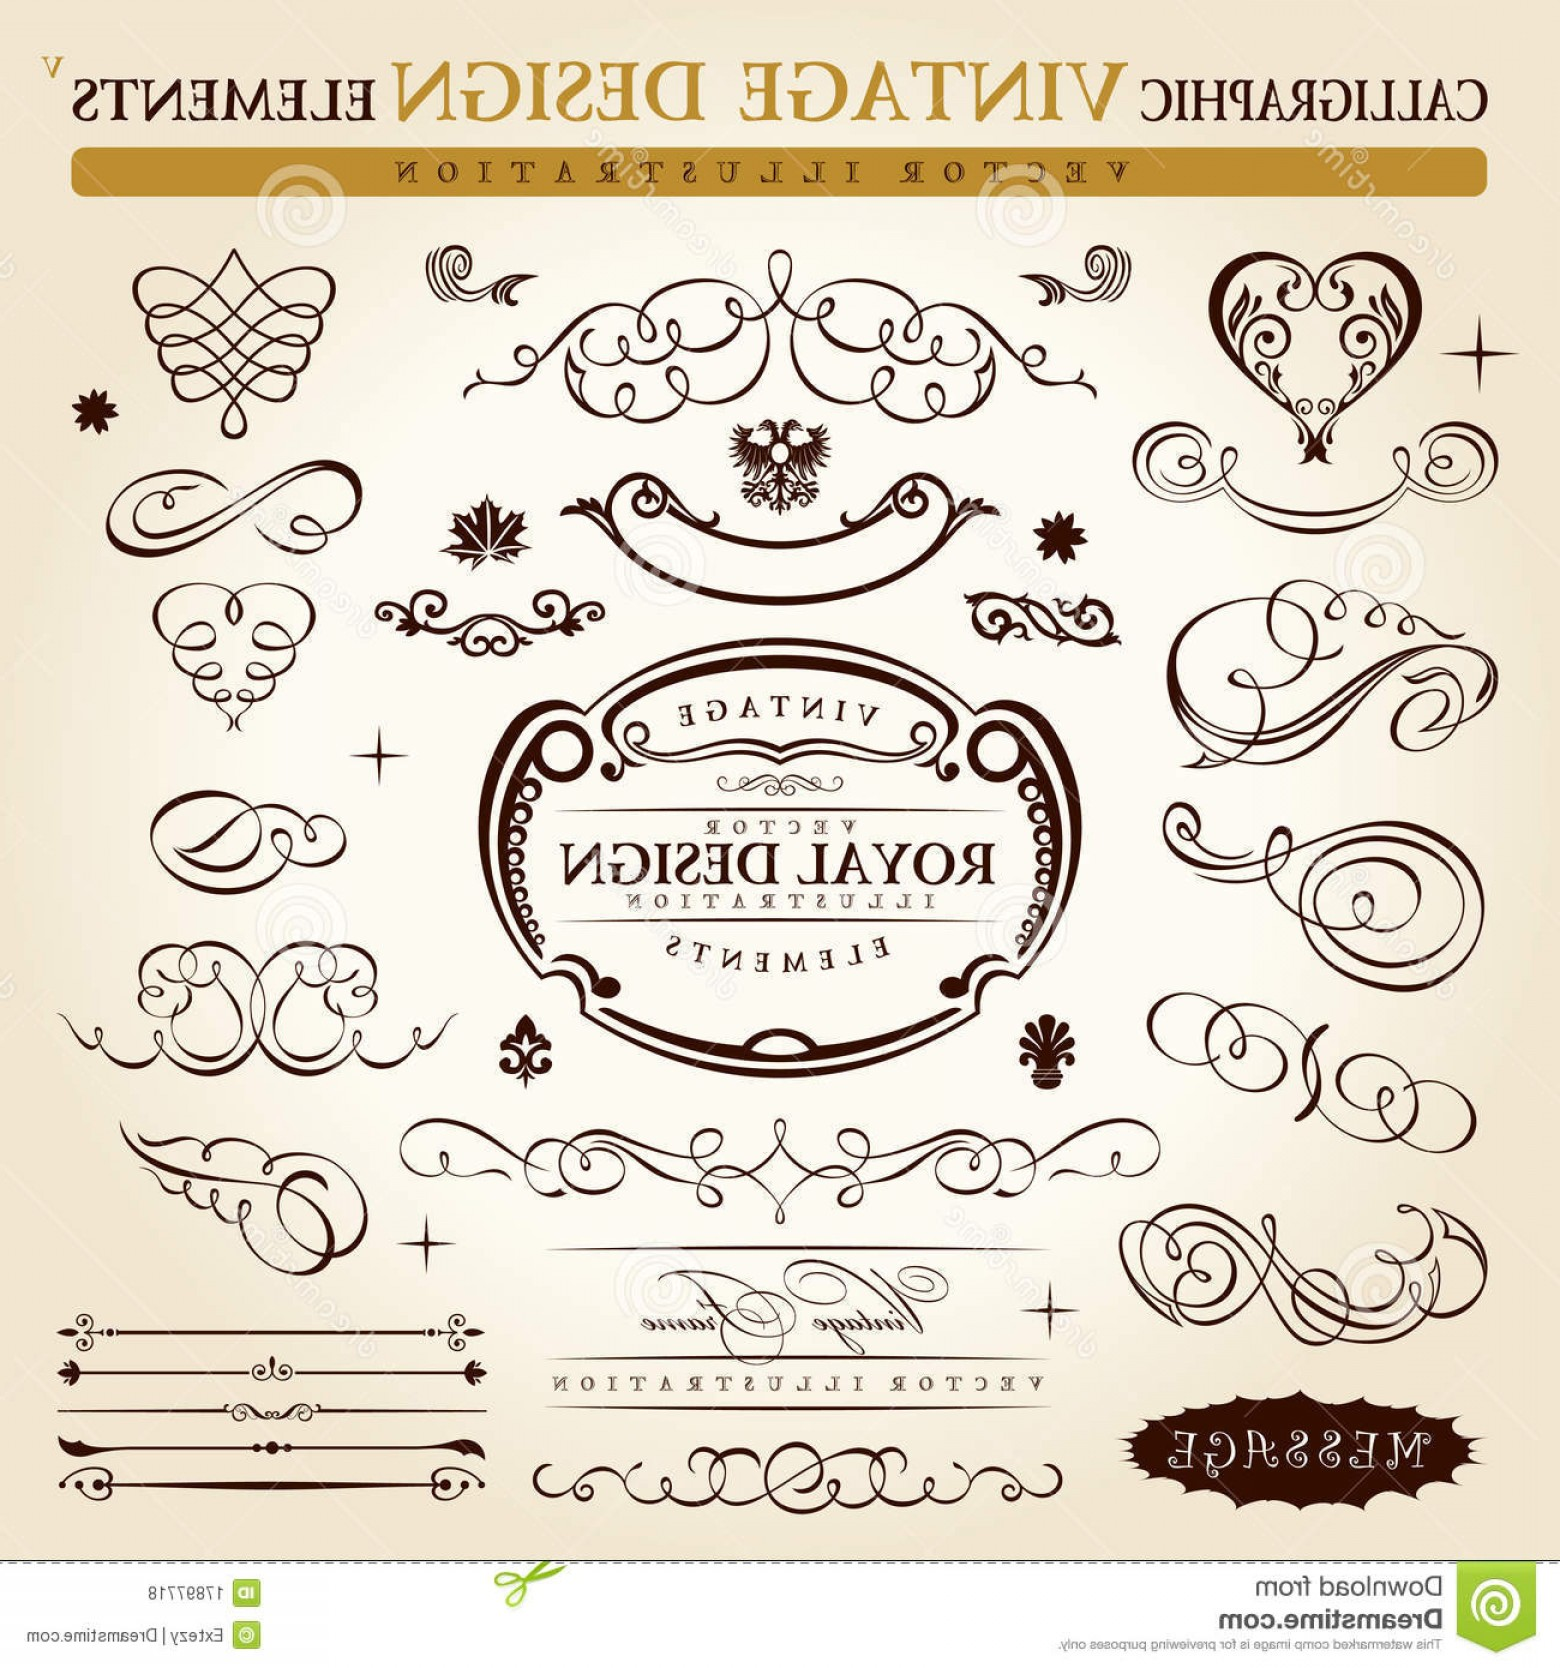 Vintage Ornate Vectors: Royalty Free Stock Photos Calligraphic Vintage Ornament Vector Frame Image